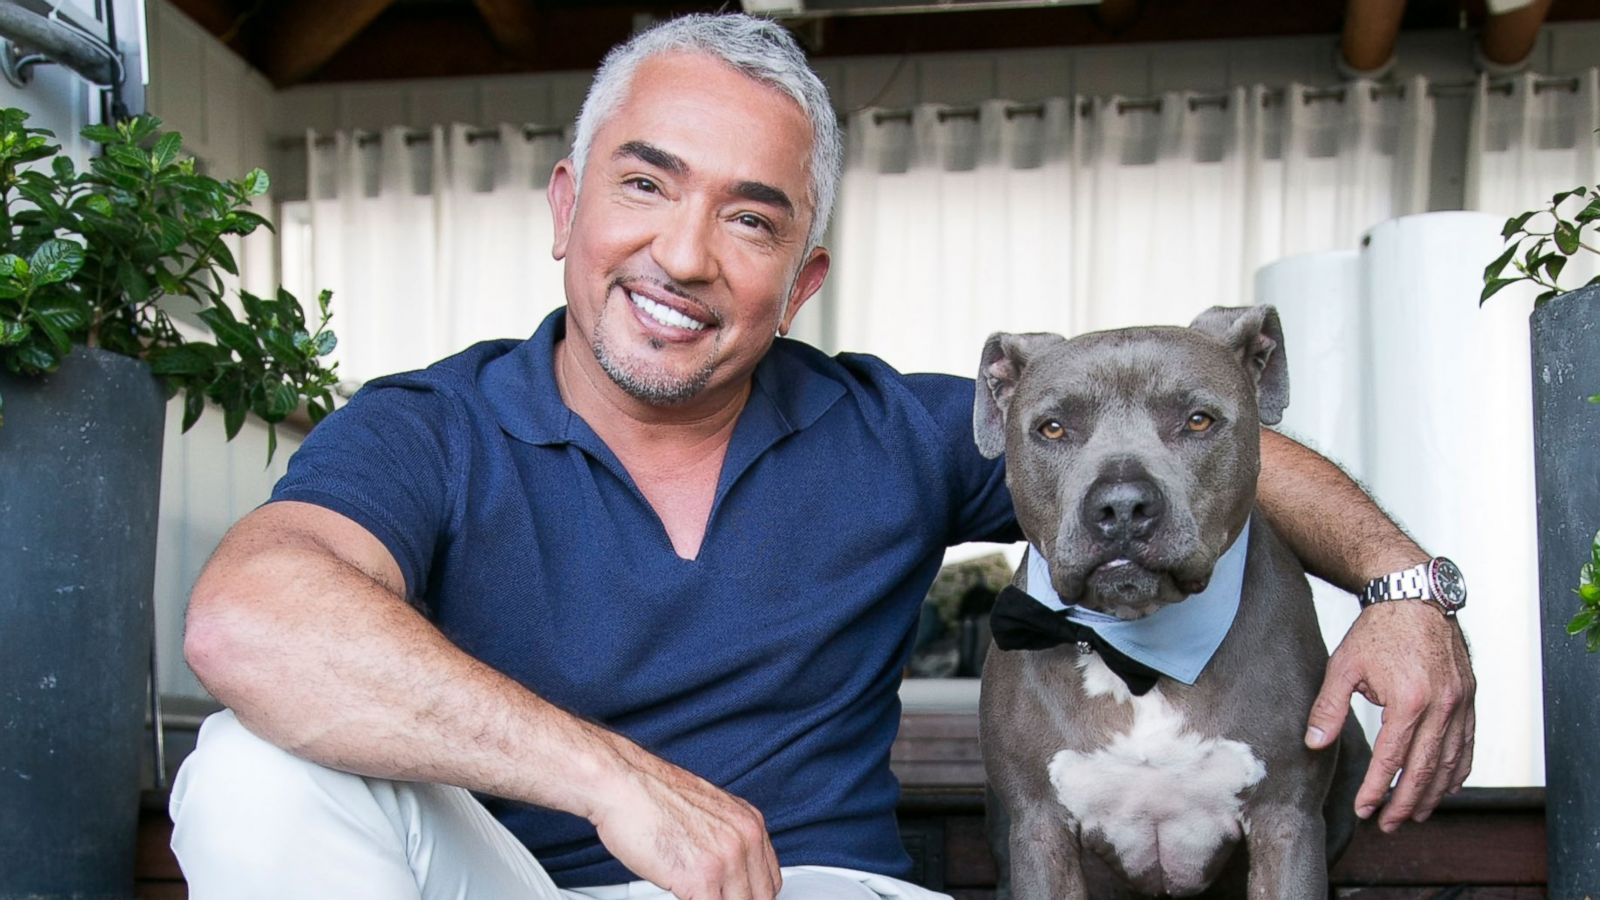 Where does cesar millan live